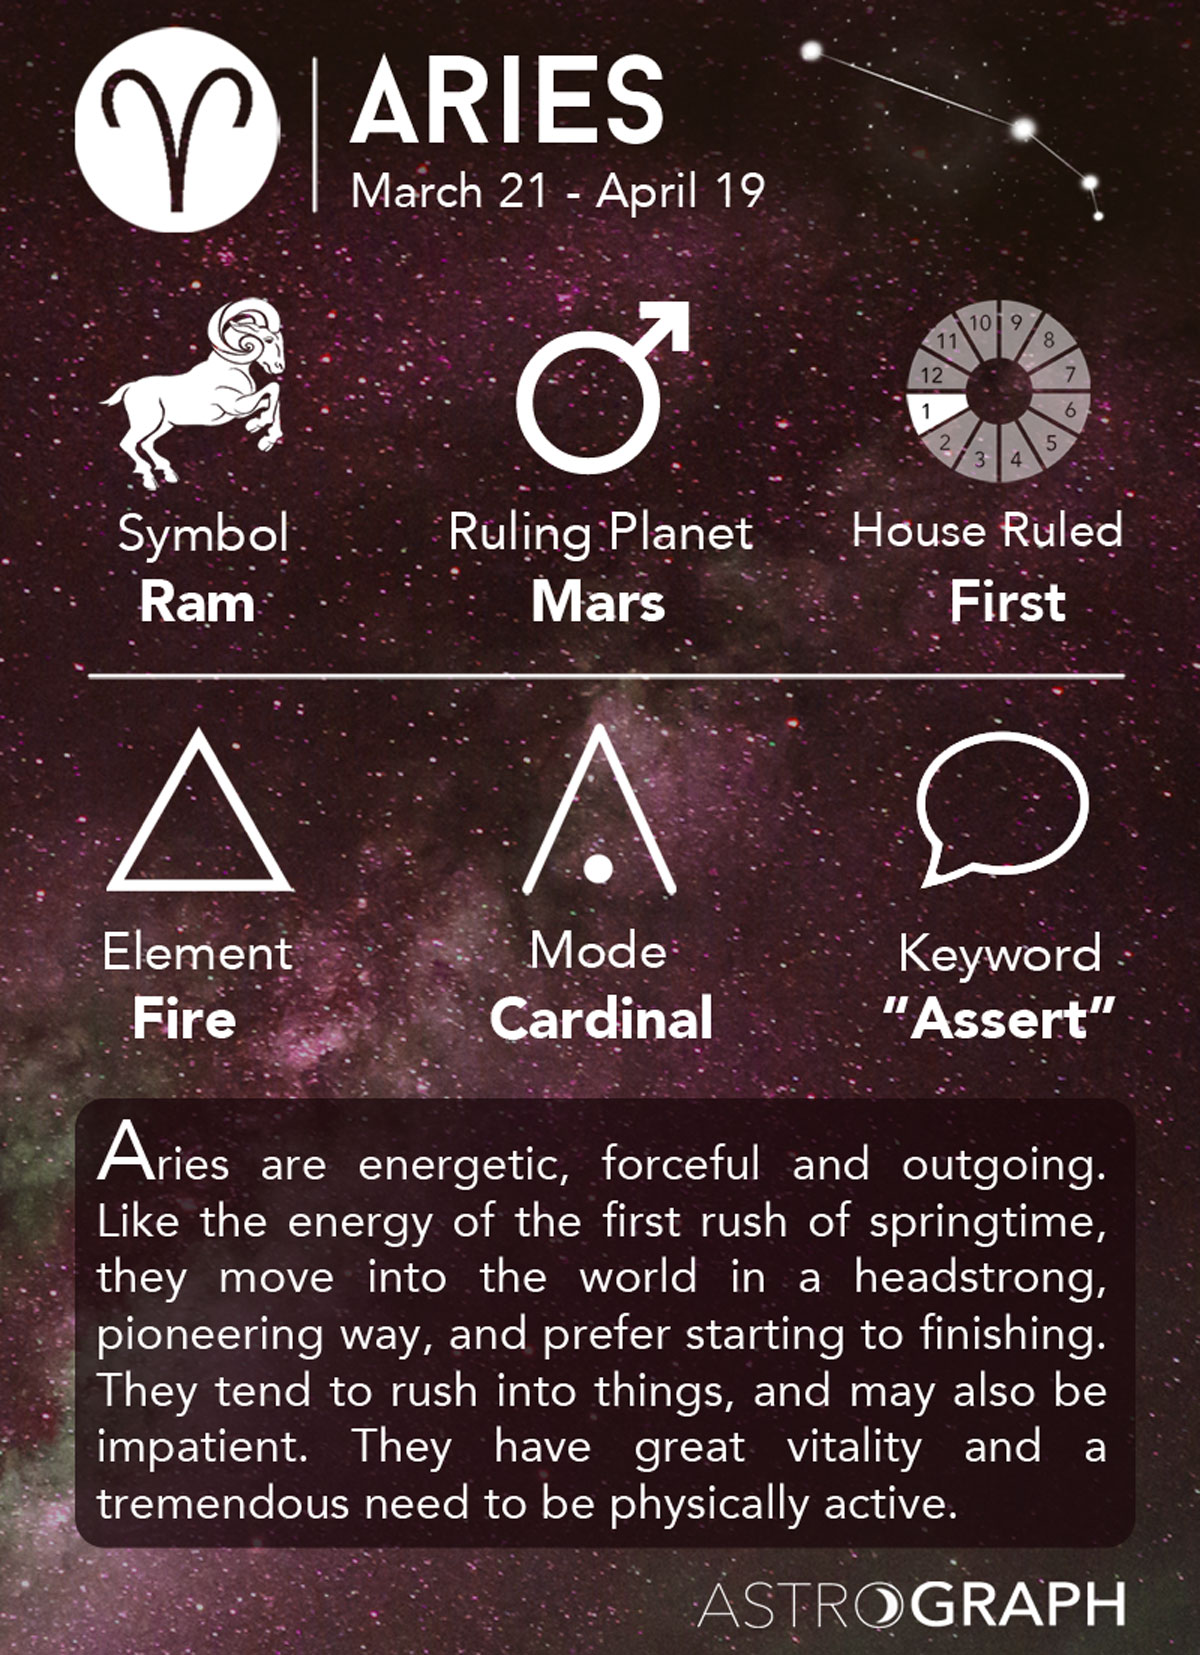 aries and ariess compatibility